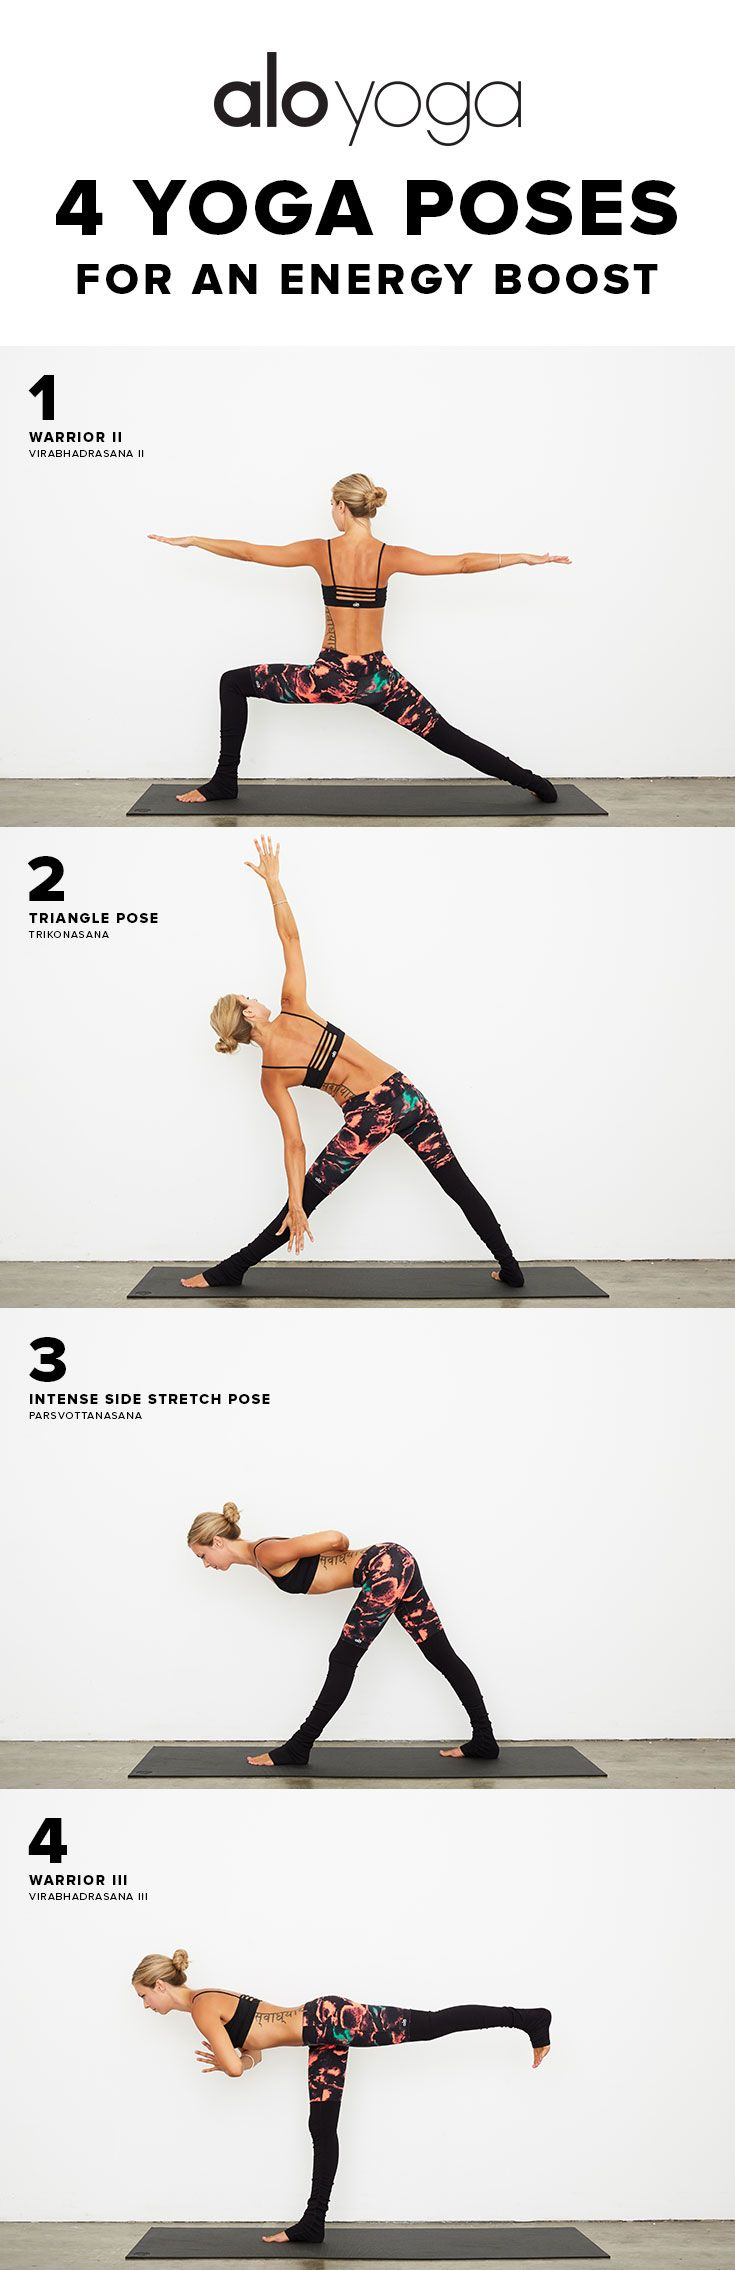 4 Yoga Poses For An Energy Boost #yoga #yogaposes